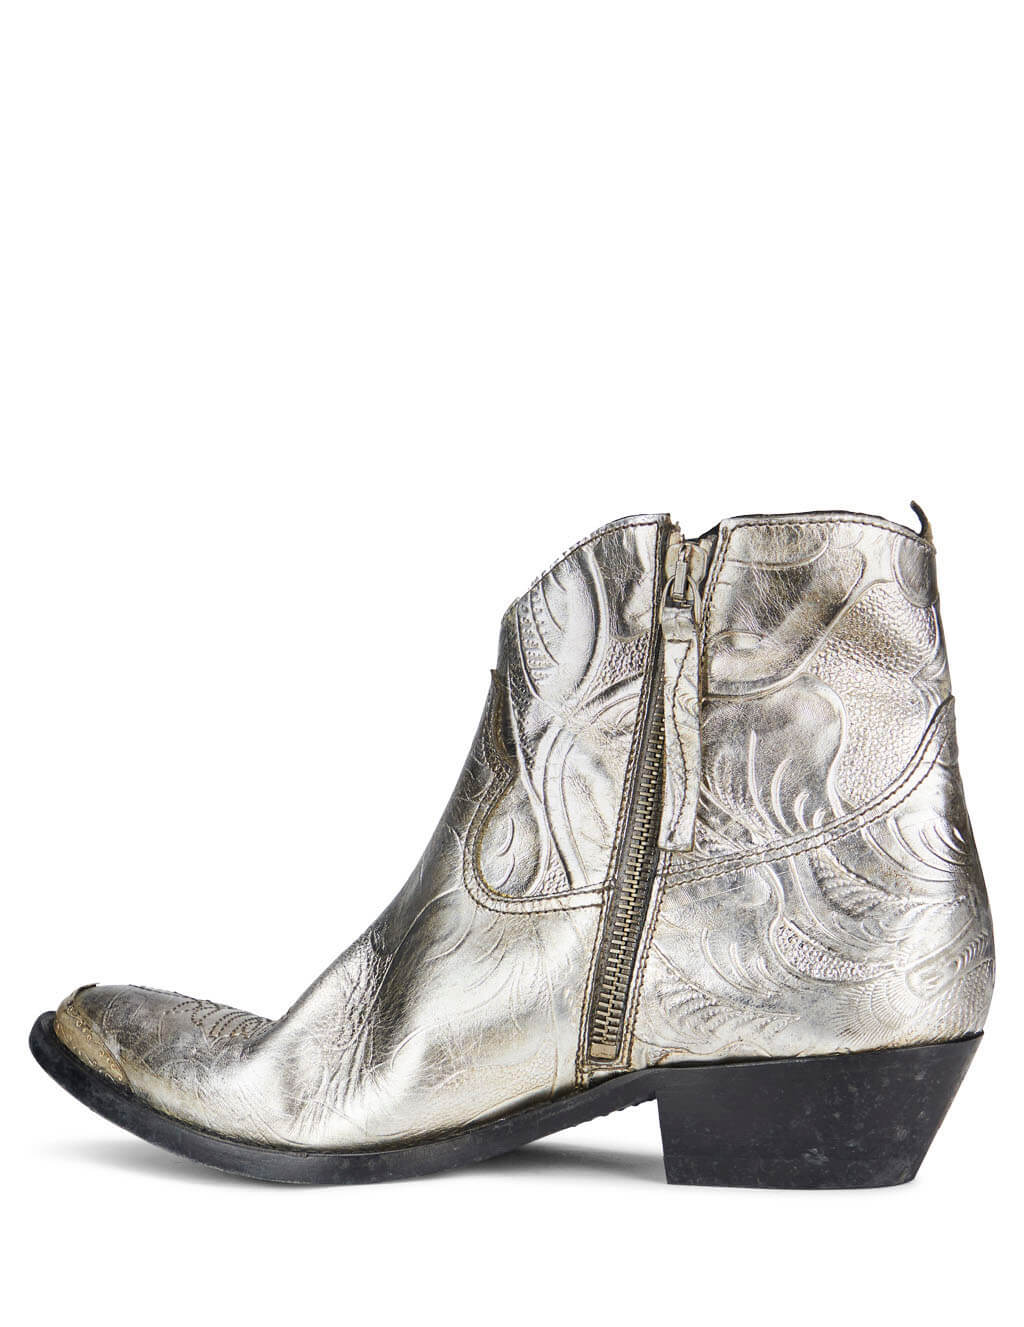 Golden Goose Deluxe Brand Women's Giulio Fashion Silver Texan Flowers Boots G35WS274F5